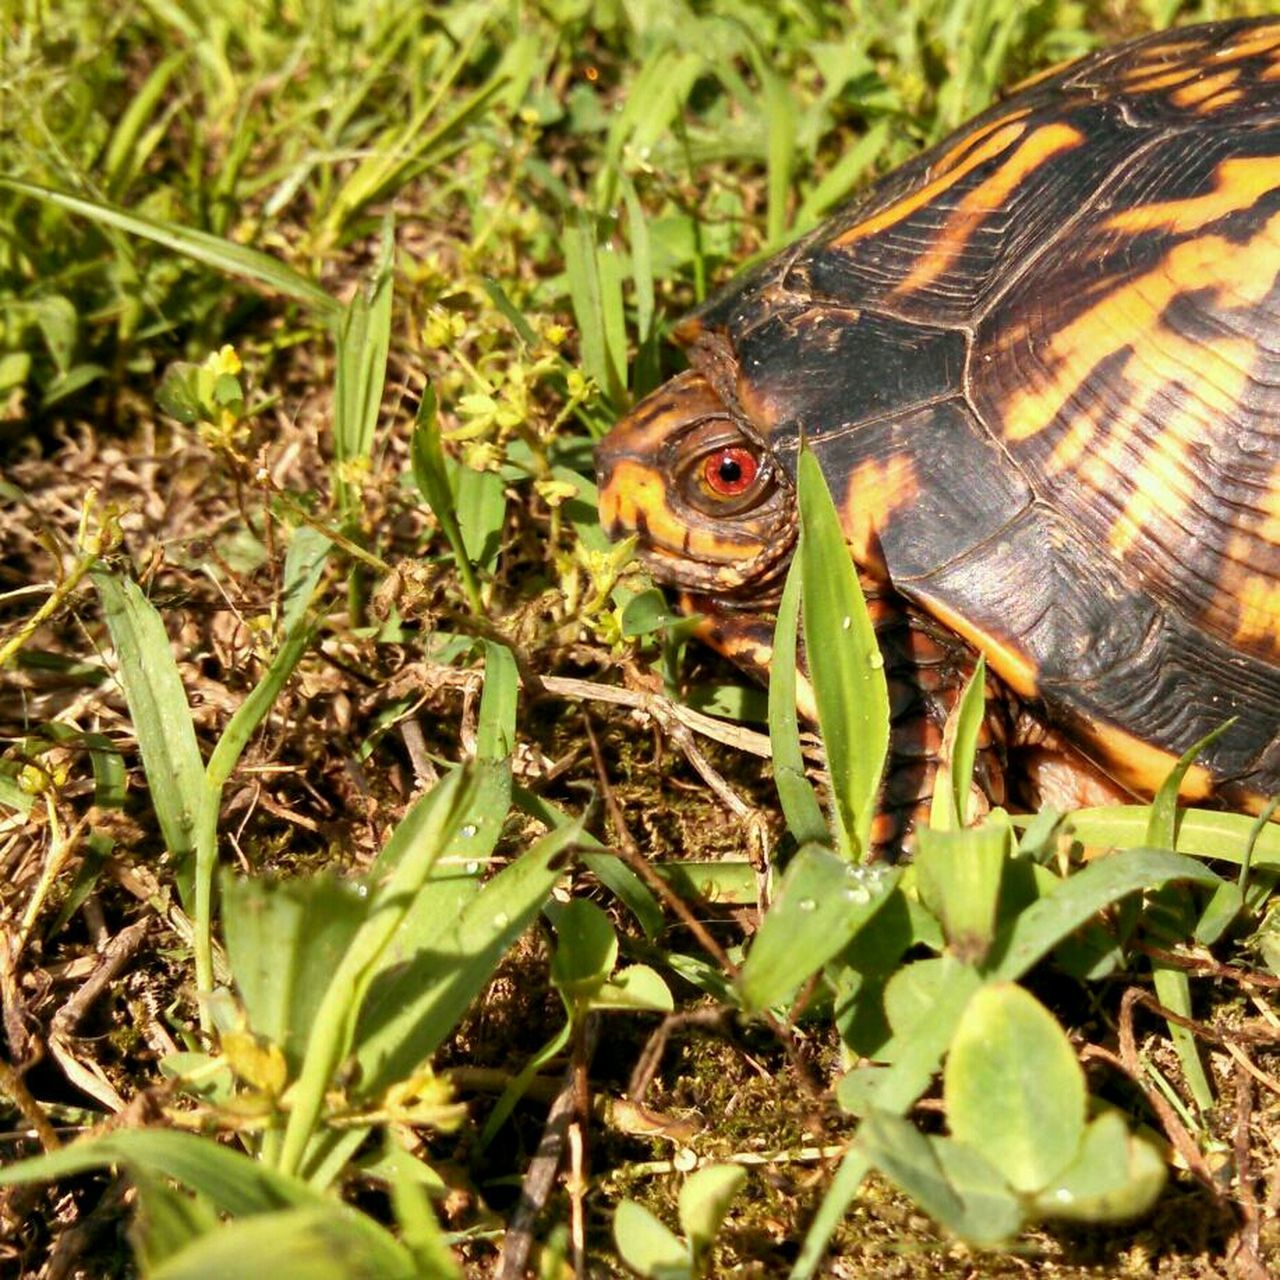 The Purist (no Edit, No Filter) EyeEm Nature Lover Turtle I See You